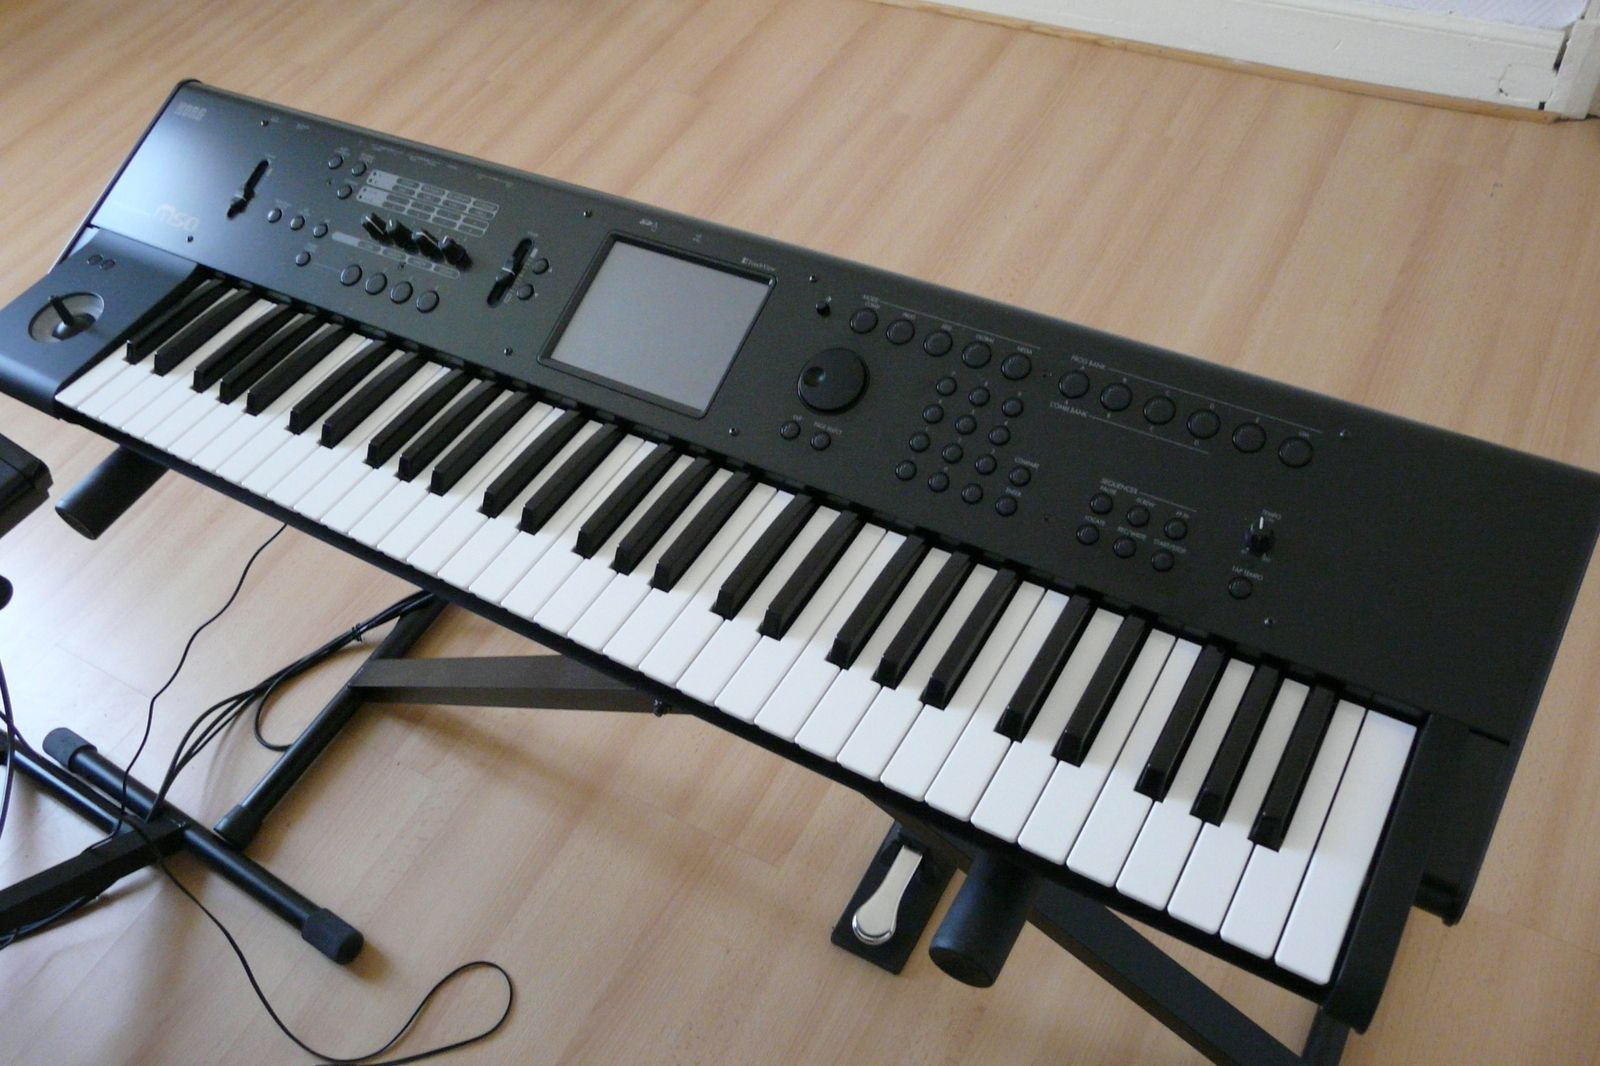 Korg M50 | Dream Board, My Life In 5 years | Playing guitar